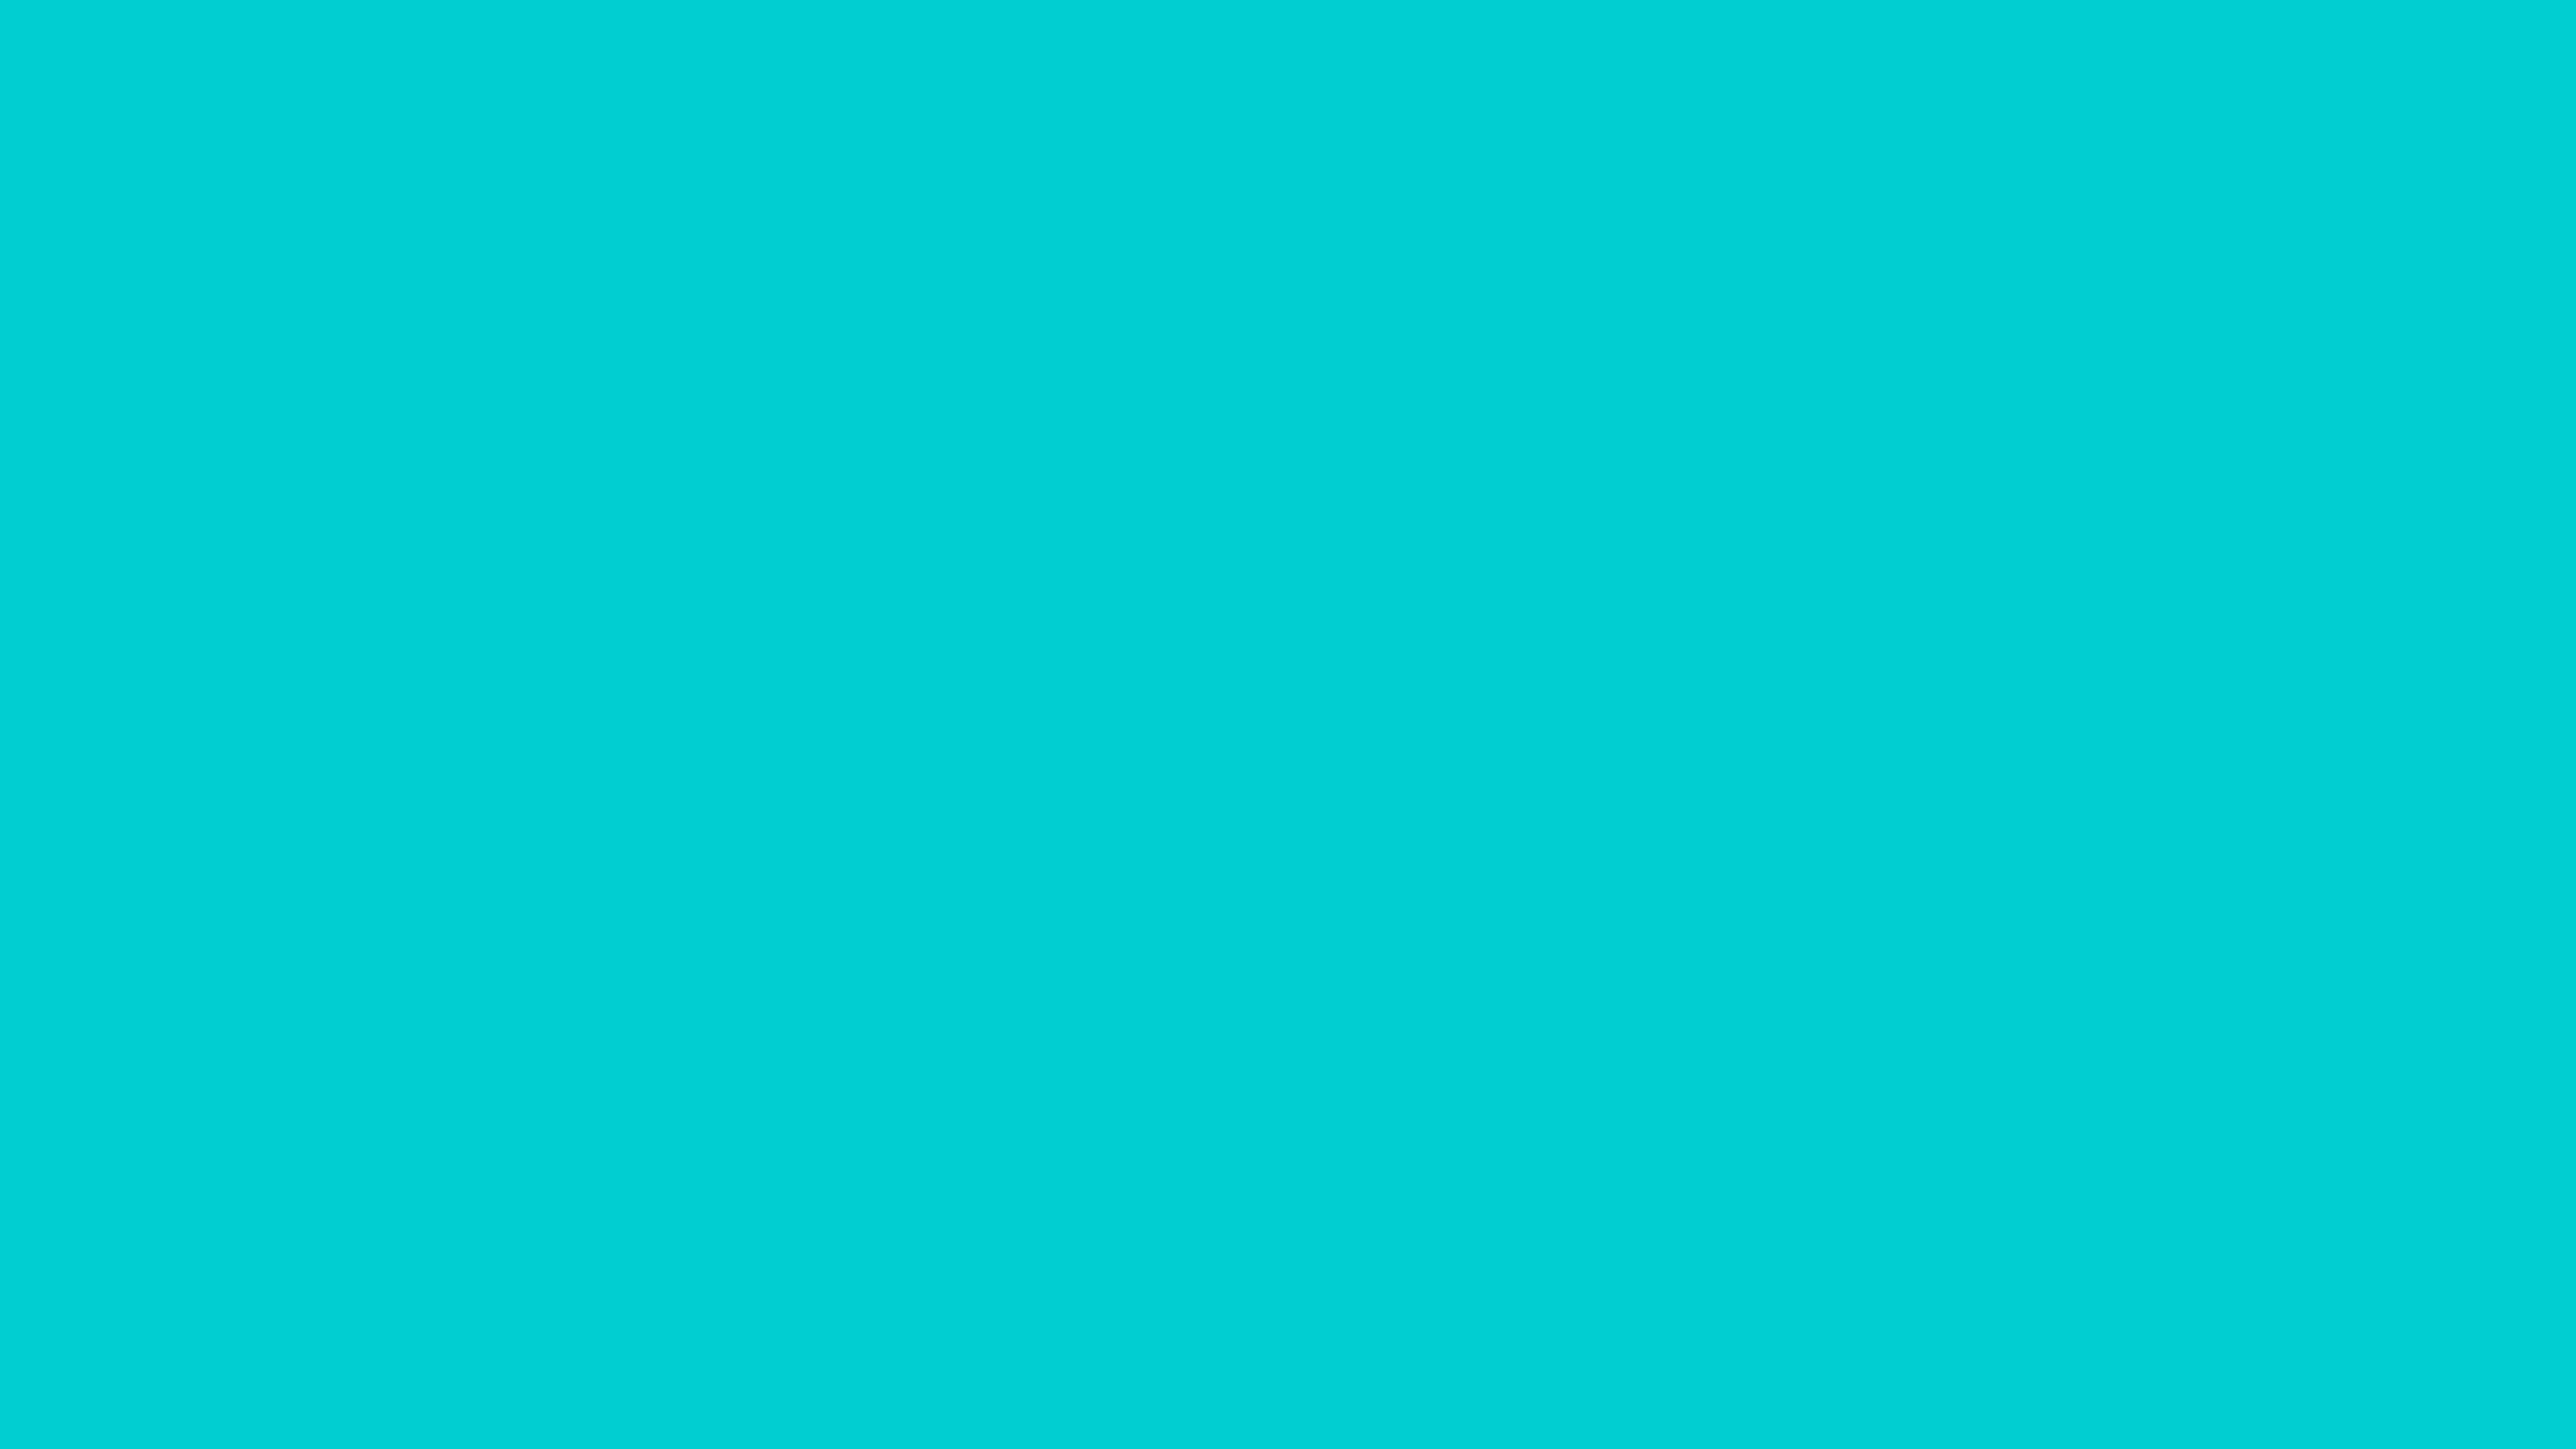 7680x4320 Dark Turquoise Solid Color Background